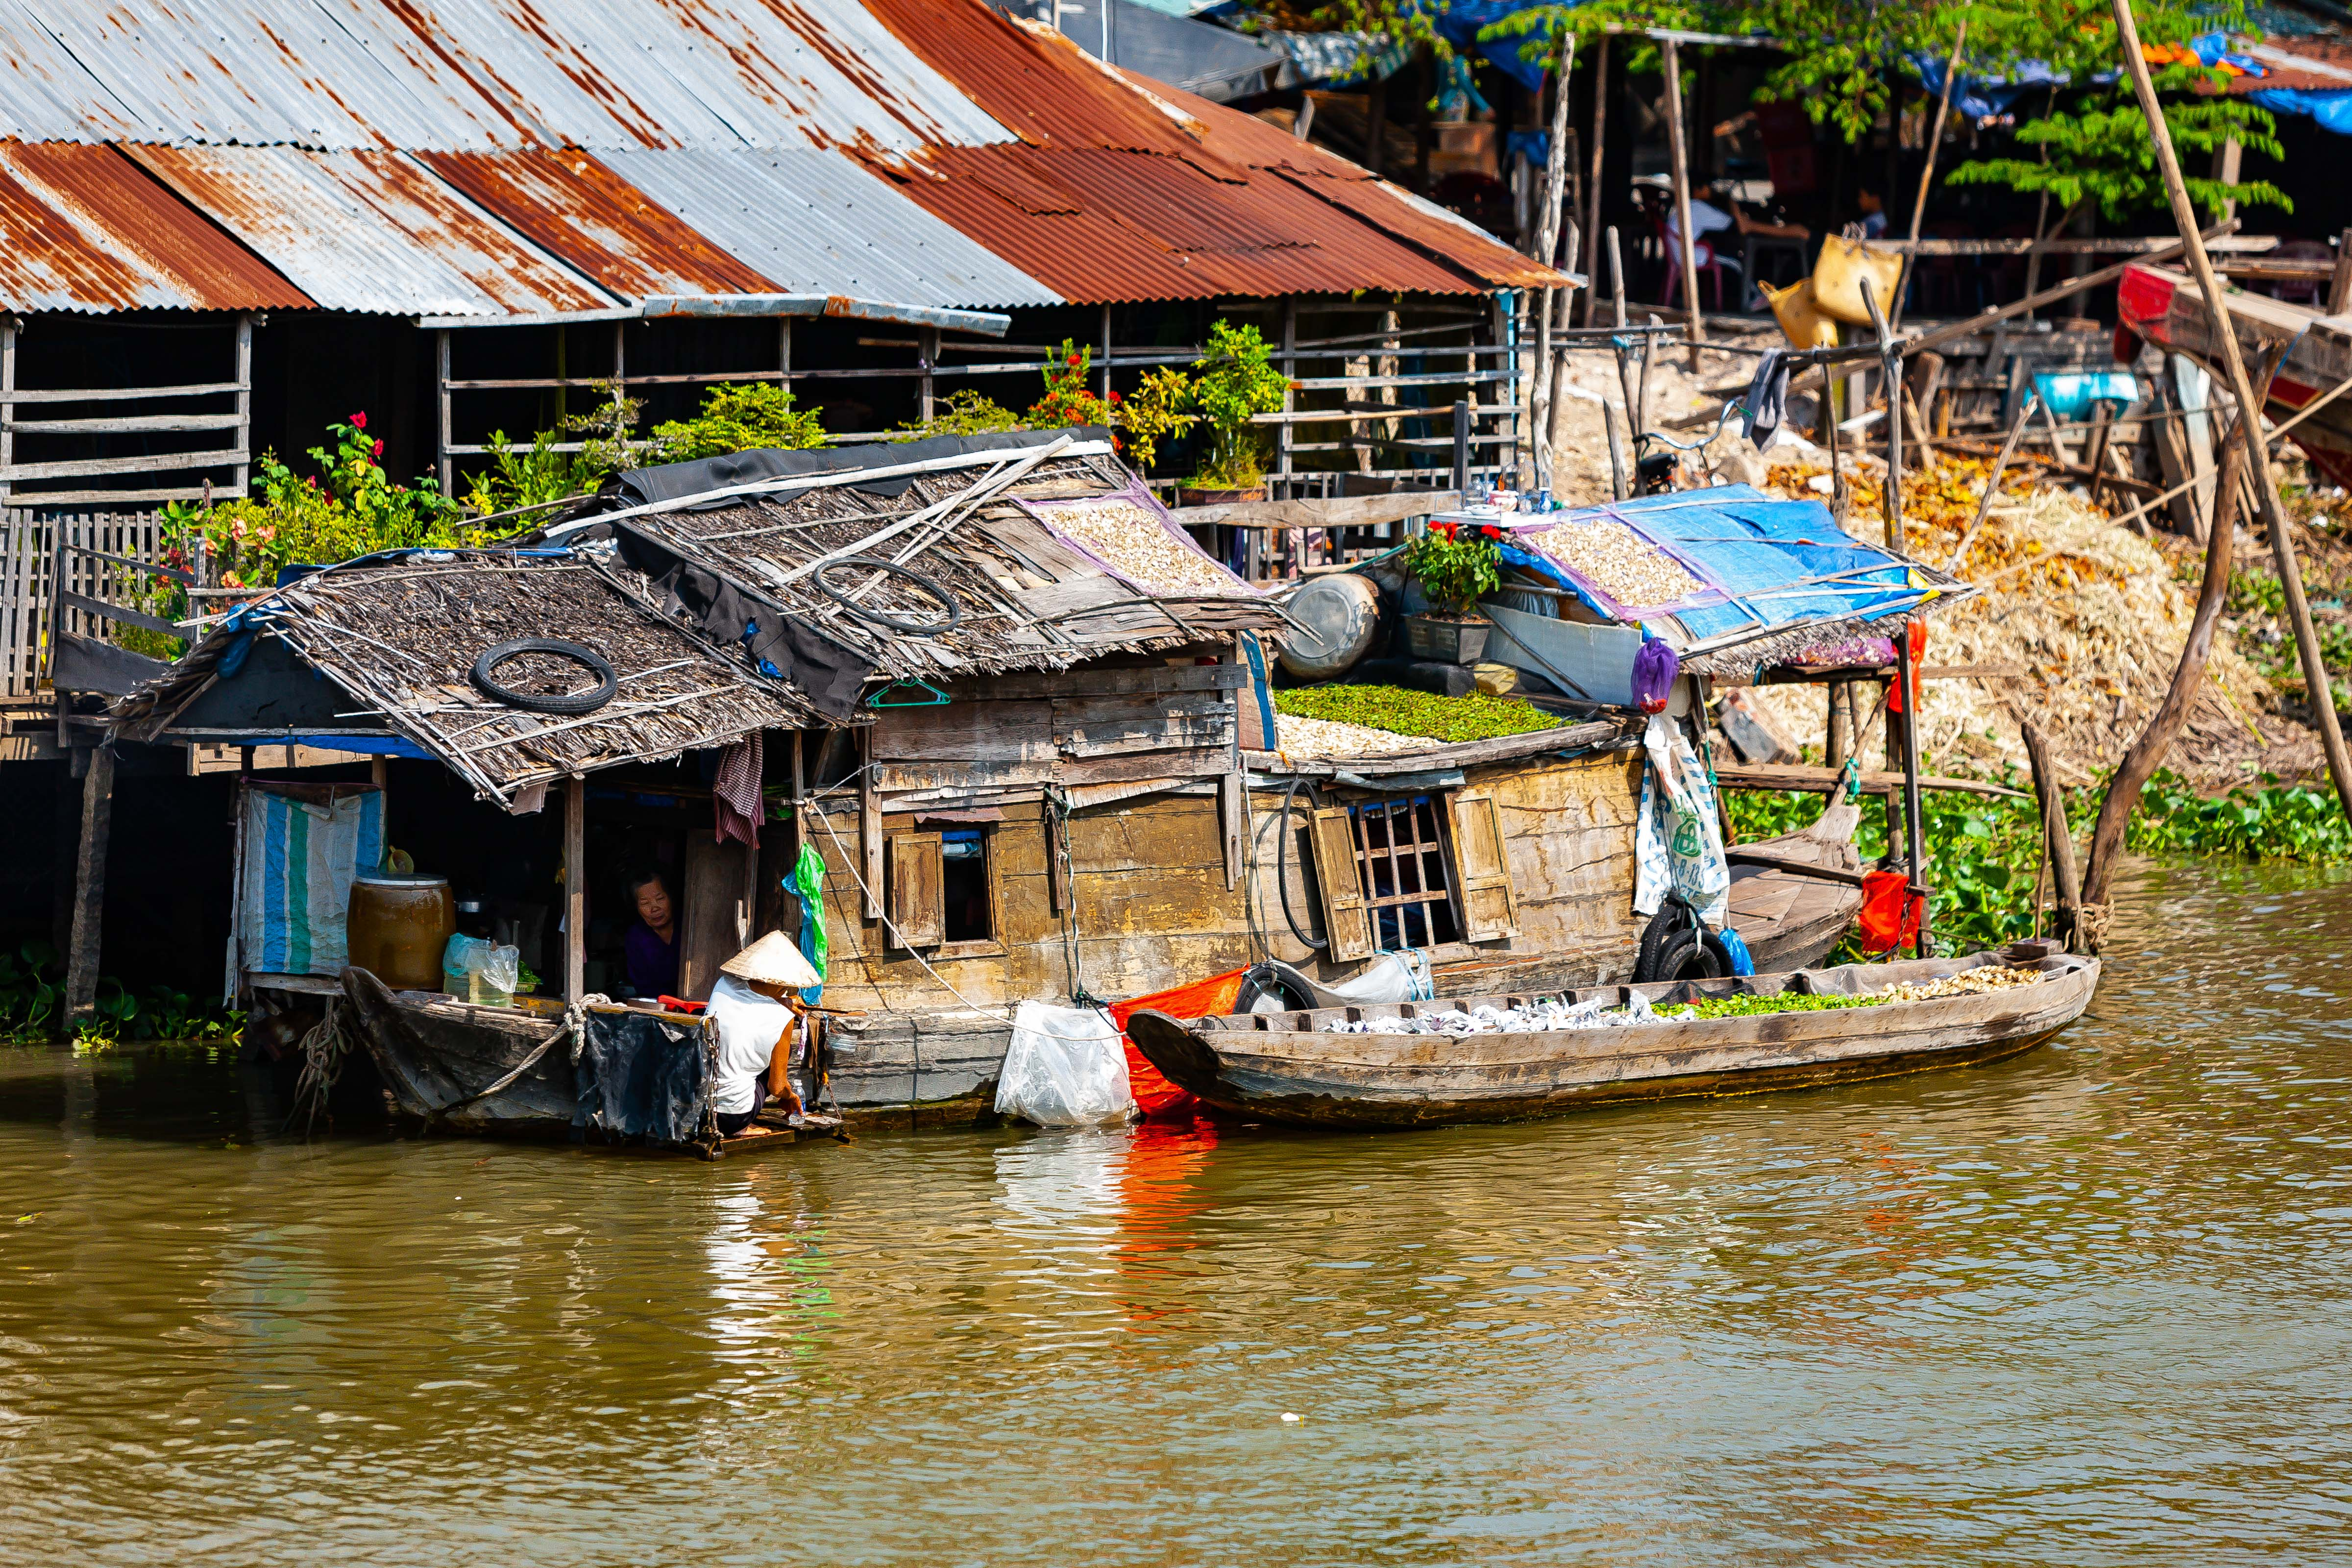 Vietnam, An Giang Prov, House Boat, 2010, IMG 1834